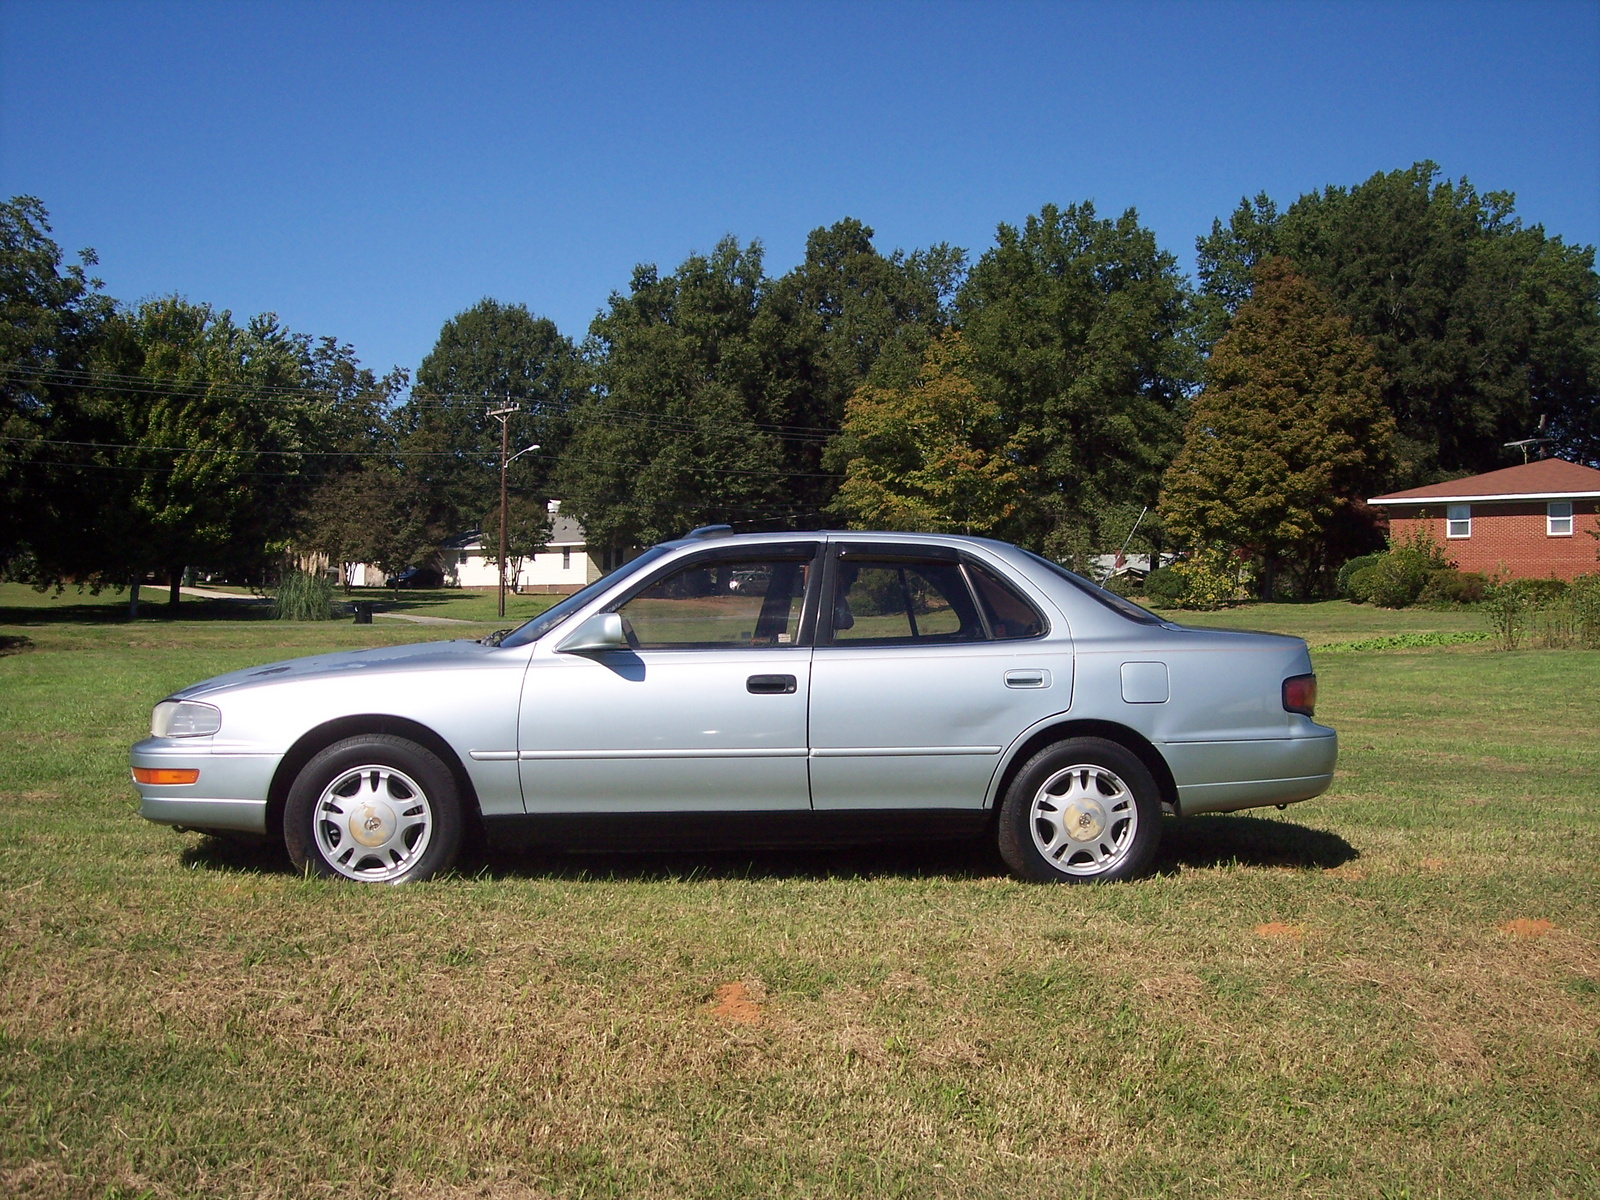 1994 Toyota Camry - Pictures